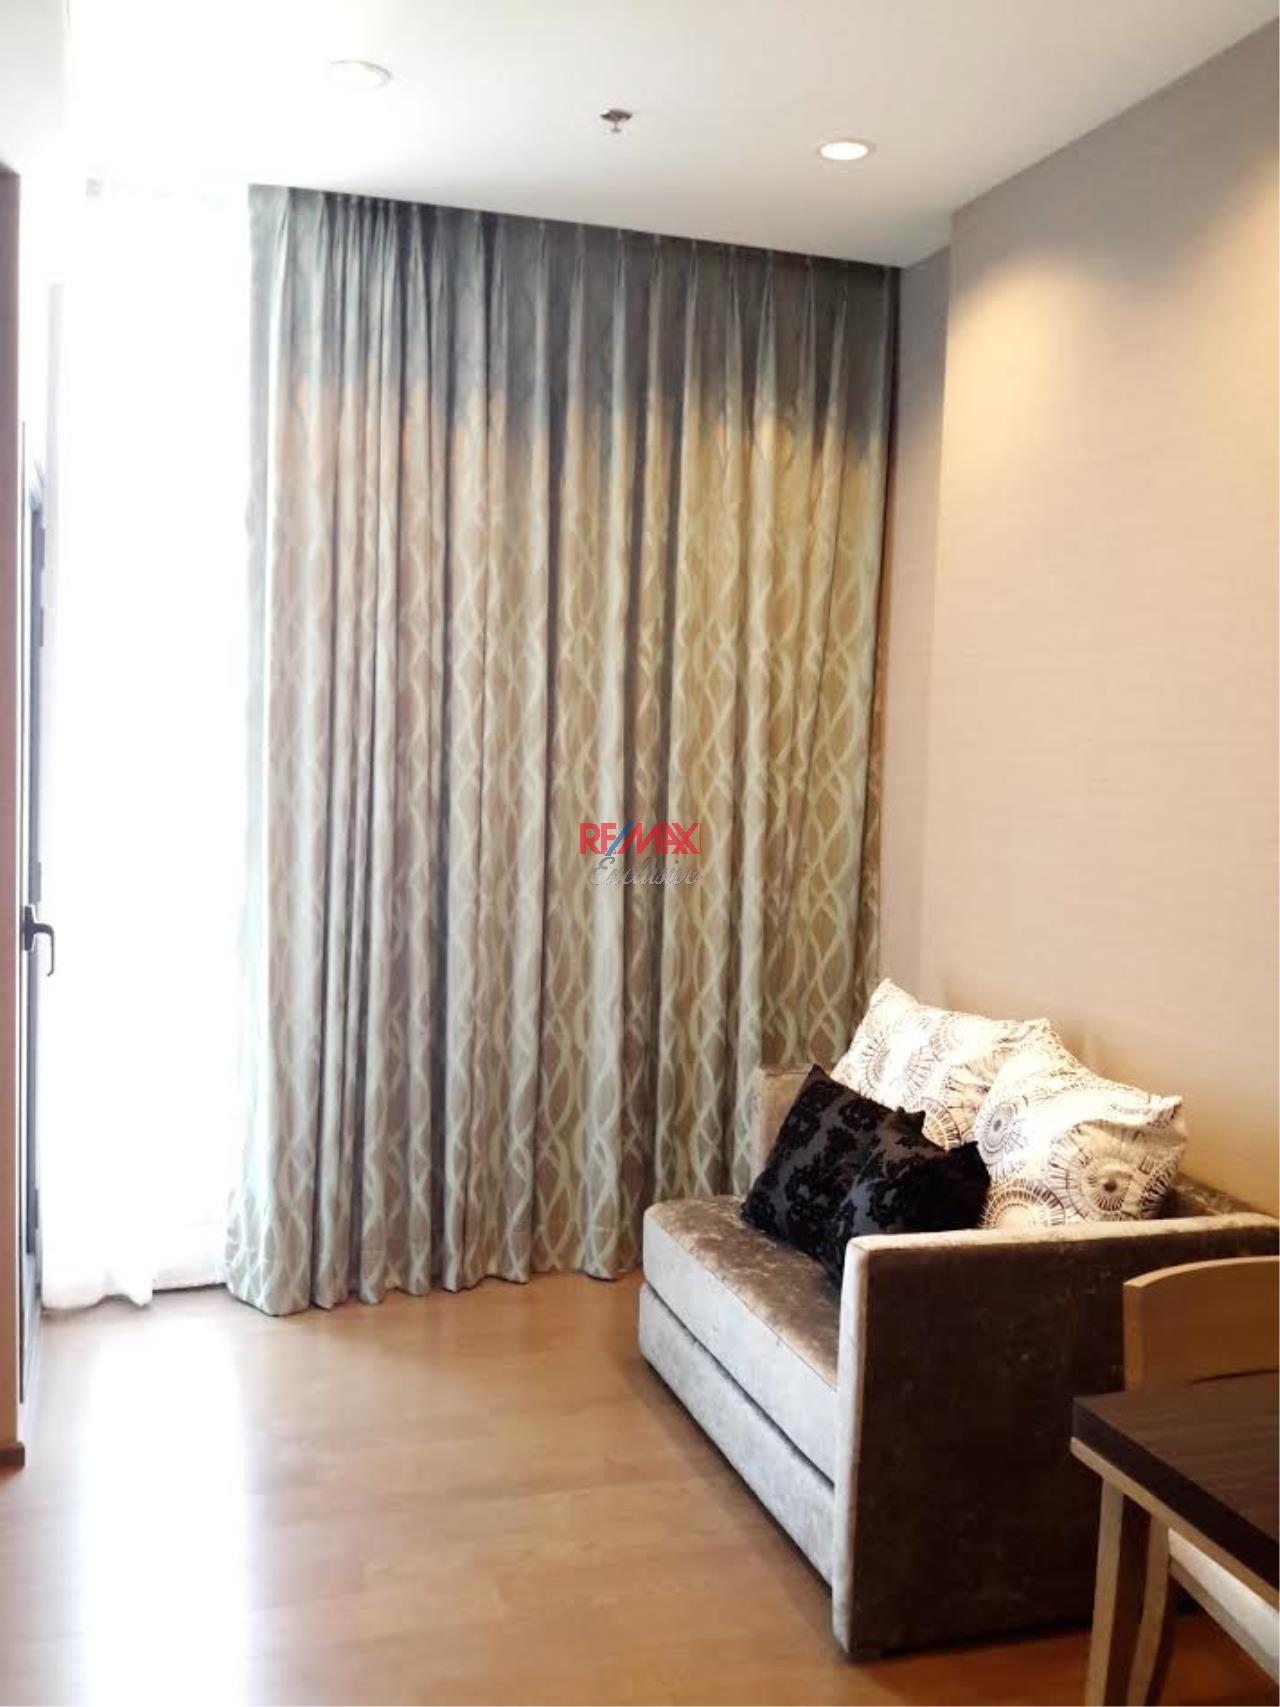 RE/MAX Exclusive Agency's The Diplomat Sathorn 1 Bedroom for rent 40,000 THB 9